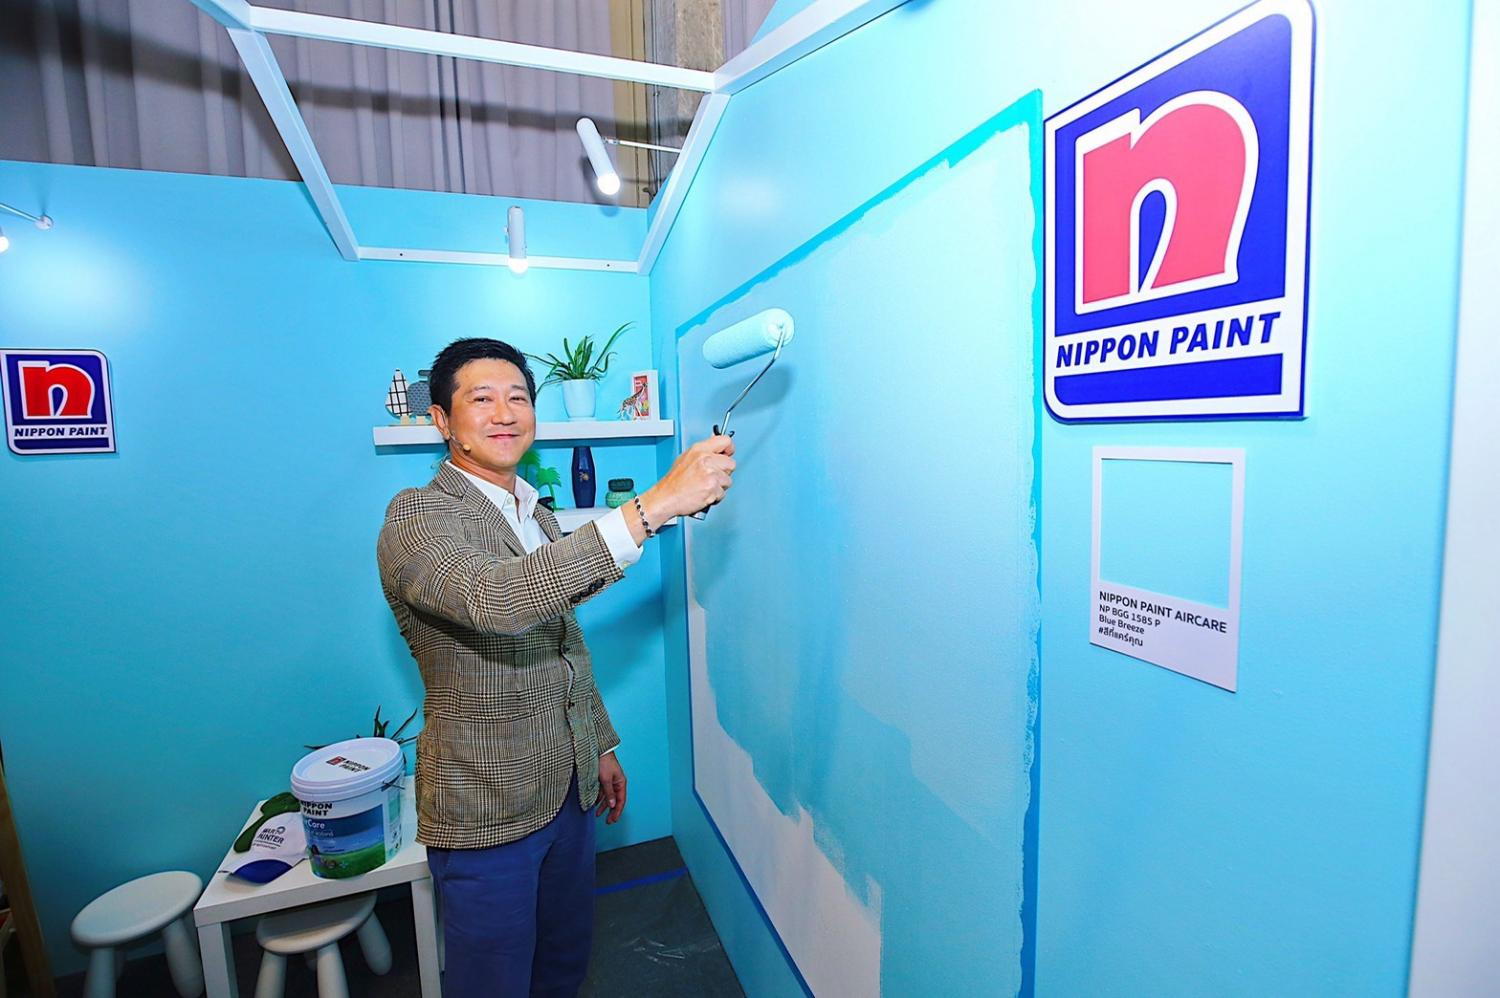 Mr Watchara promotes a new line of paint that purports to be antibacterial and antiviral.